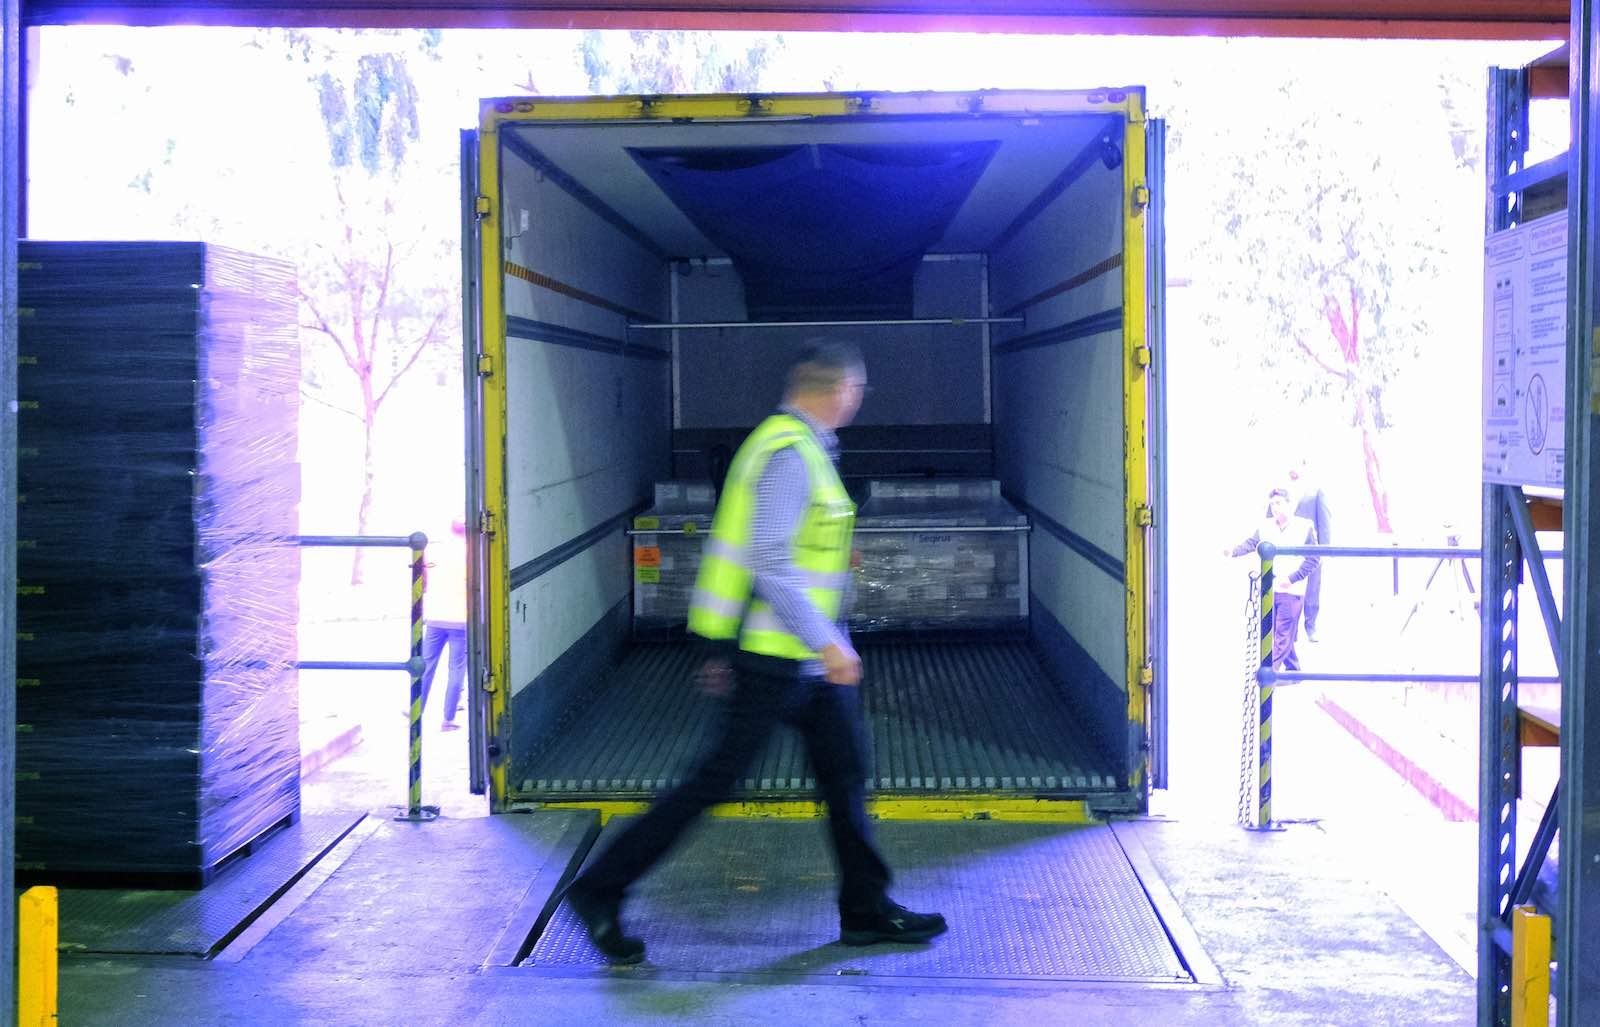 Workers at CSL loading the first batch of Australian-produced AstraZeneca Covid-19 vaccine for distribution, Melbourne, 24 March 2021 (Luis Ascui/Getty Images)